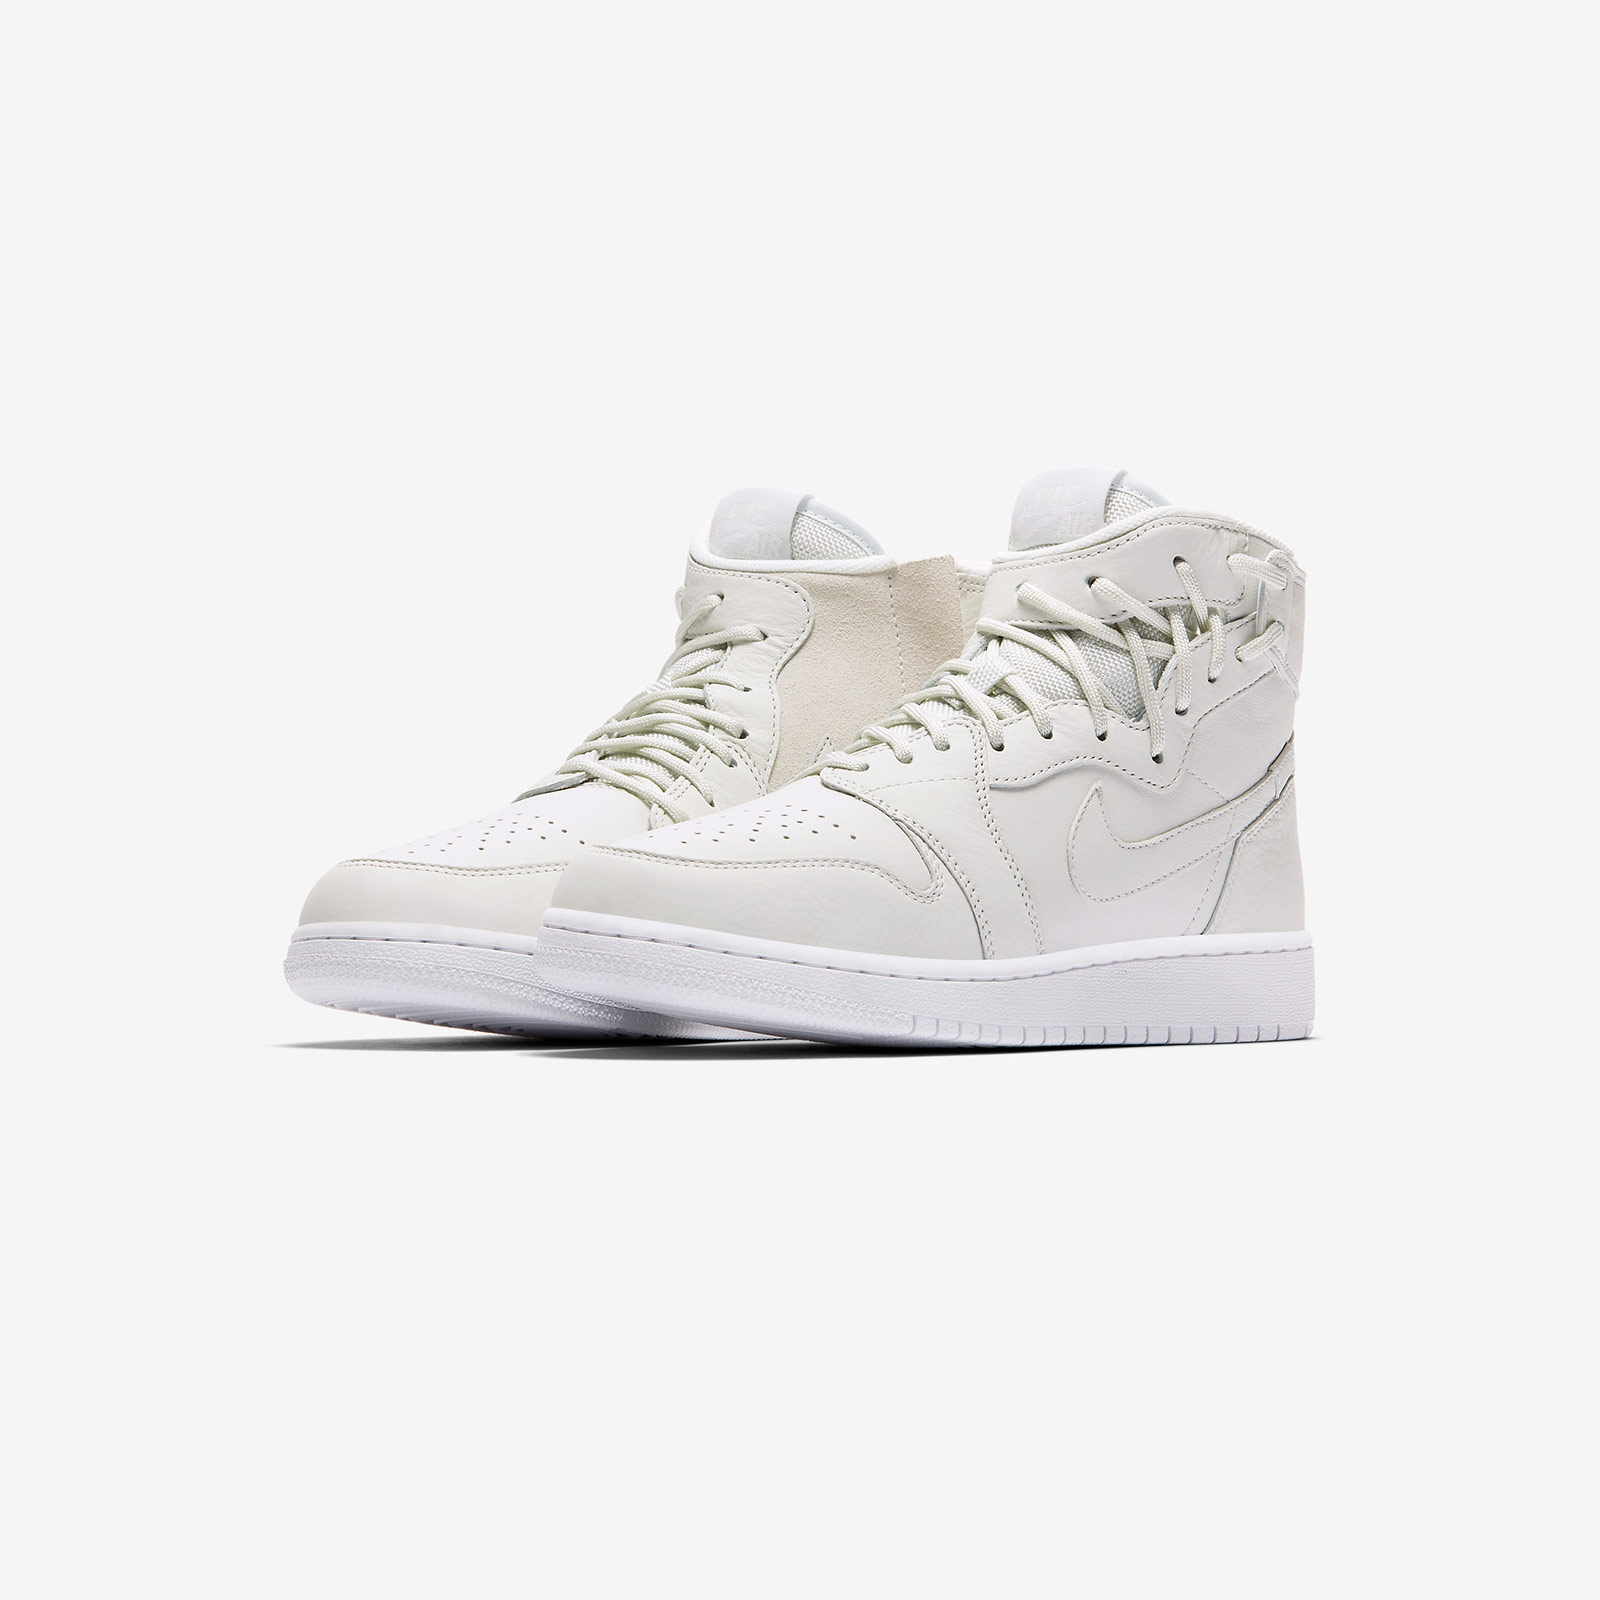 finest selection 43bbd 99aa6 Jordan Brand Air Jordan 1 Wmns Rebel XX THE 1, REIMAGINED